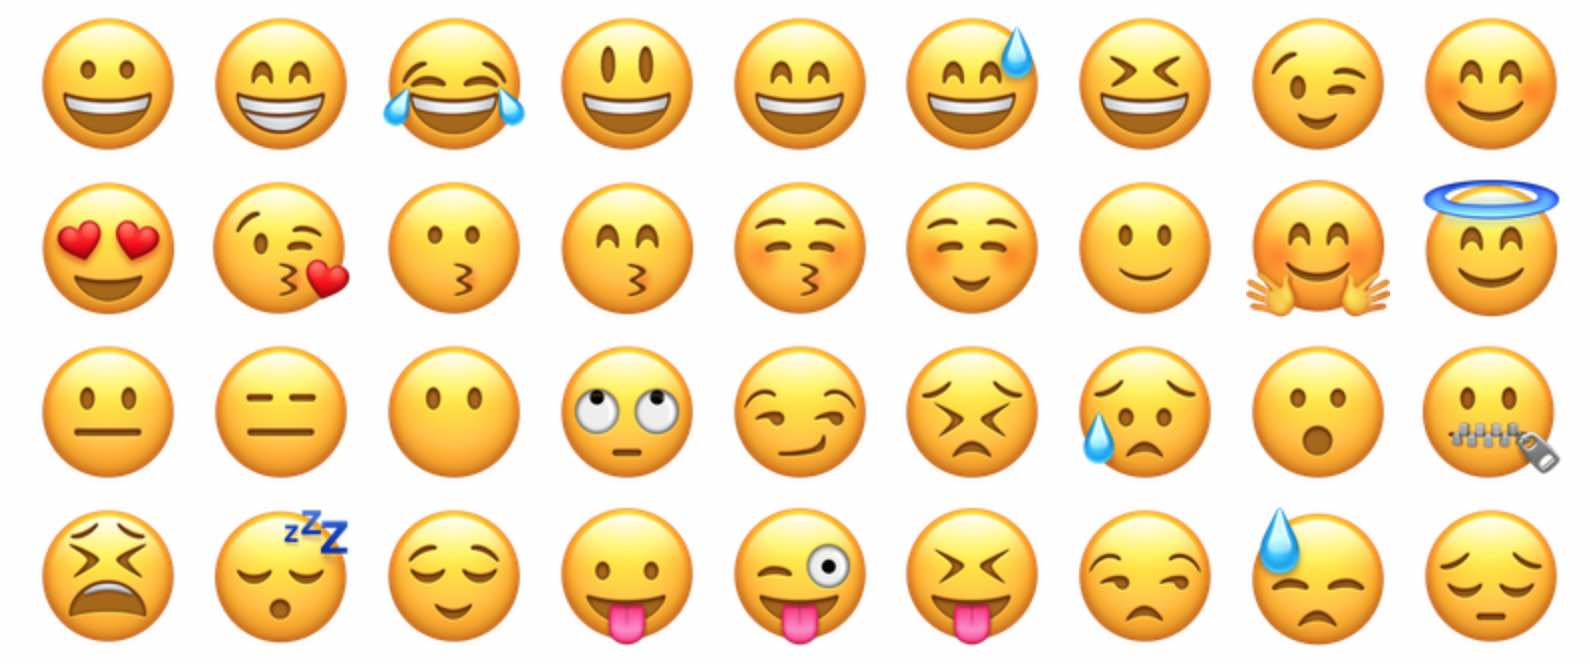 67 New Emojis Are Coming And Most Of Them Are Truly Terrible new whatsapp emojis